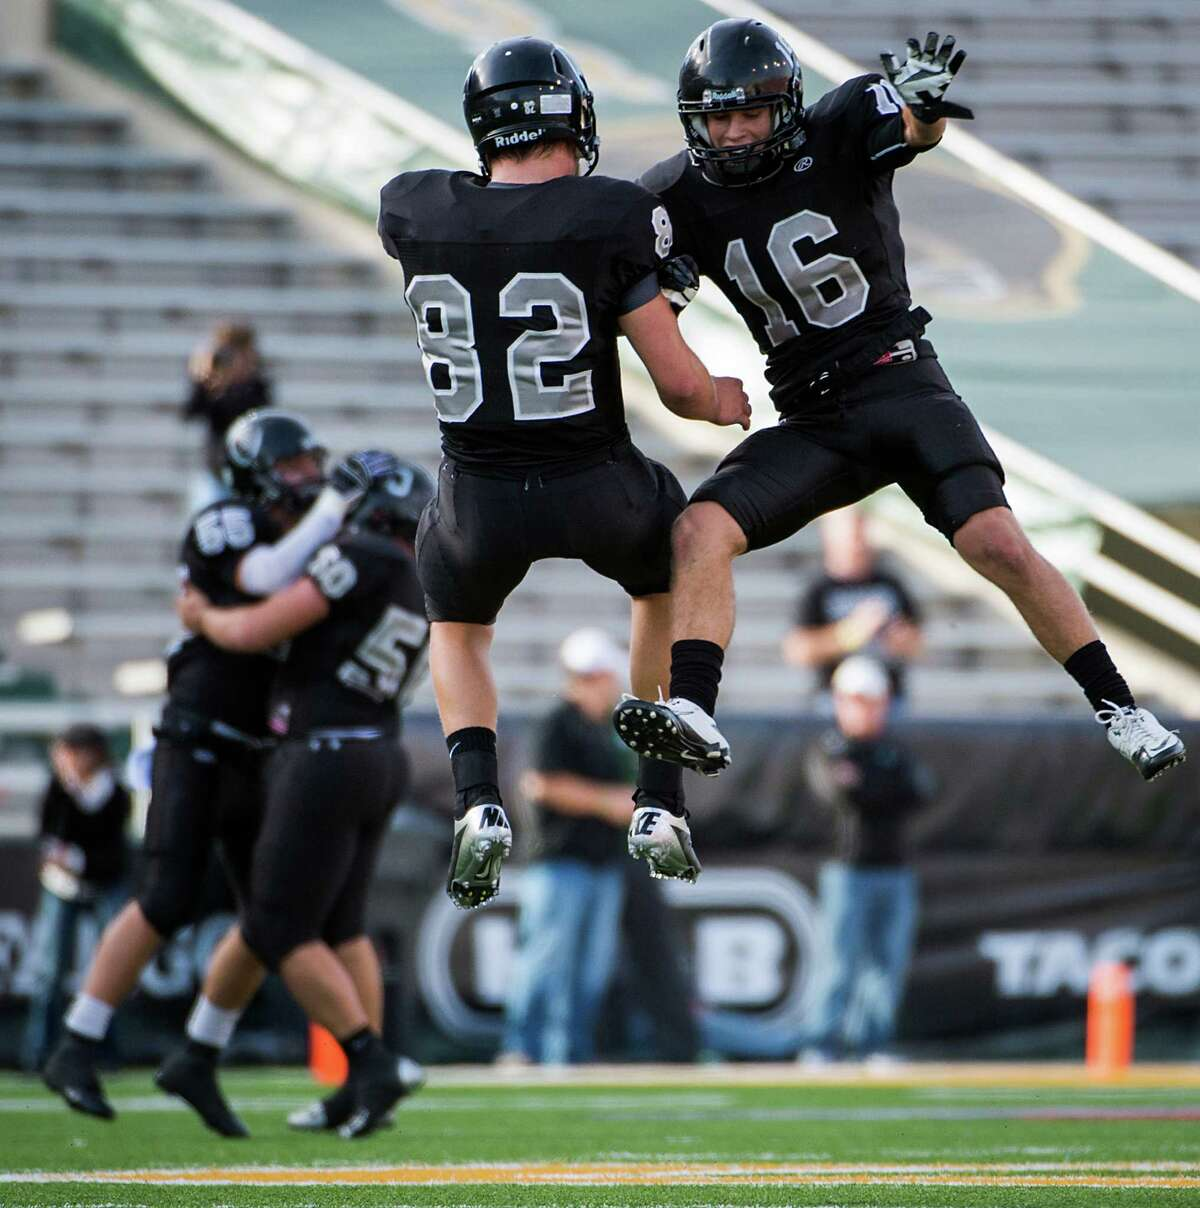 Cibolo Steele defensive back Tyler Petoskey (16) and tight end Matthew Moen (82) celebrate after the Knights recovered a Katy fumble during the second quarterin a Class 5A Division II state high school football semifinal game at Floyd Casey Stadium on Saturday, Dec. 15, 2012, in Waco. ( Smiley N. Pool / Houston Chronicle )